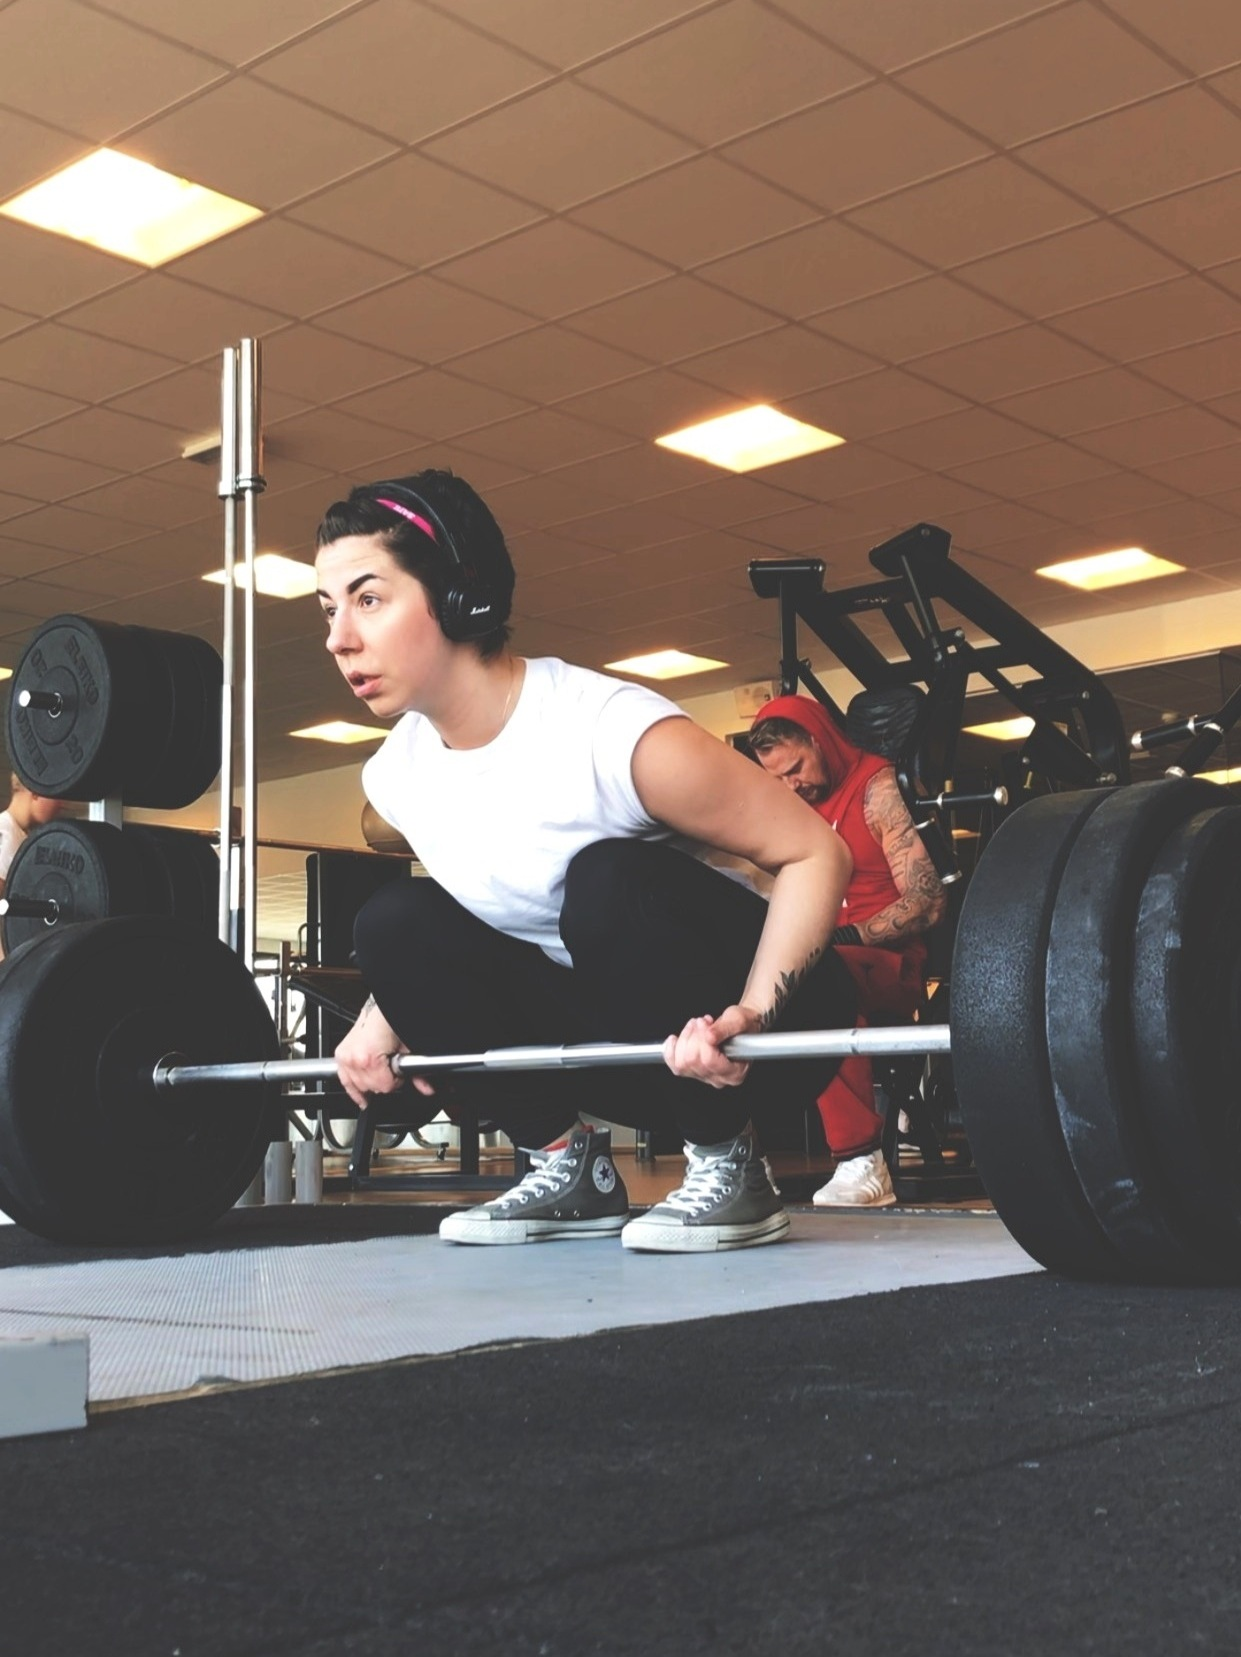 deadlift-amna1.jpg